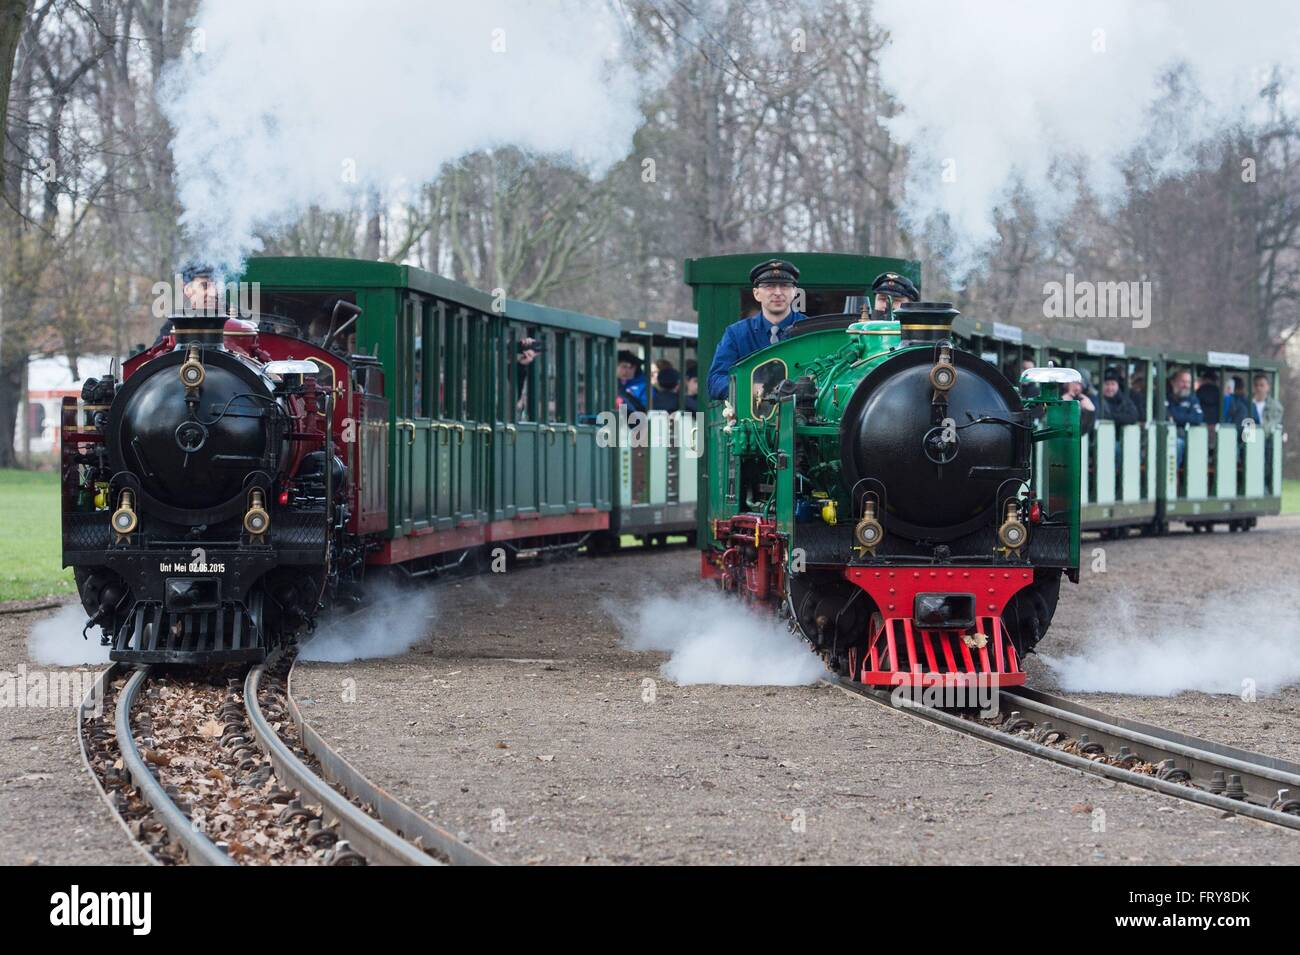 Dresden, Germany. 24th Mar, 2016. Two steam locomotives of the Dresden park railway make their way through the public - Stock Image